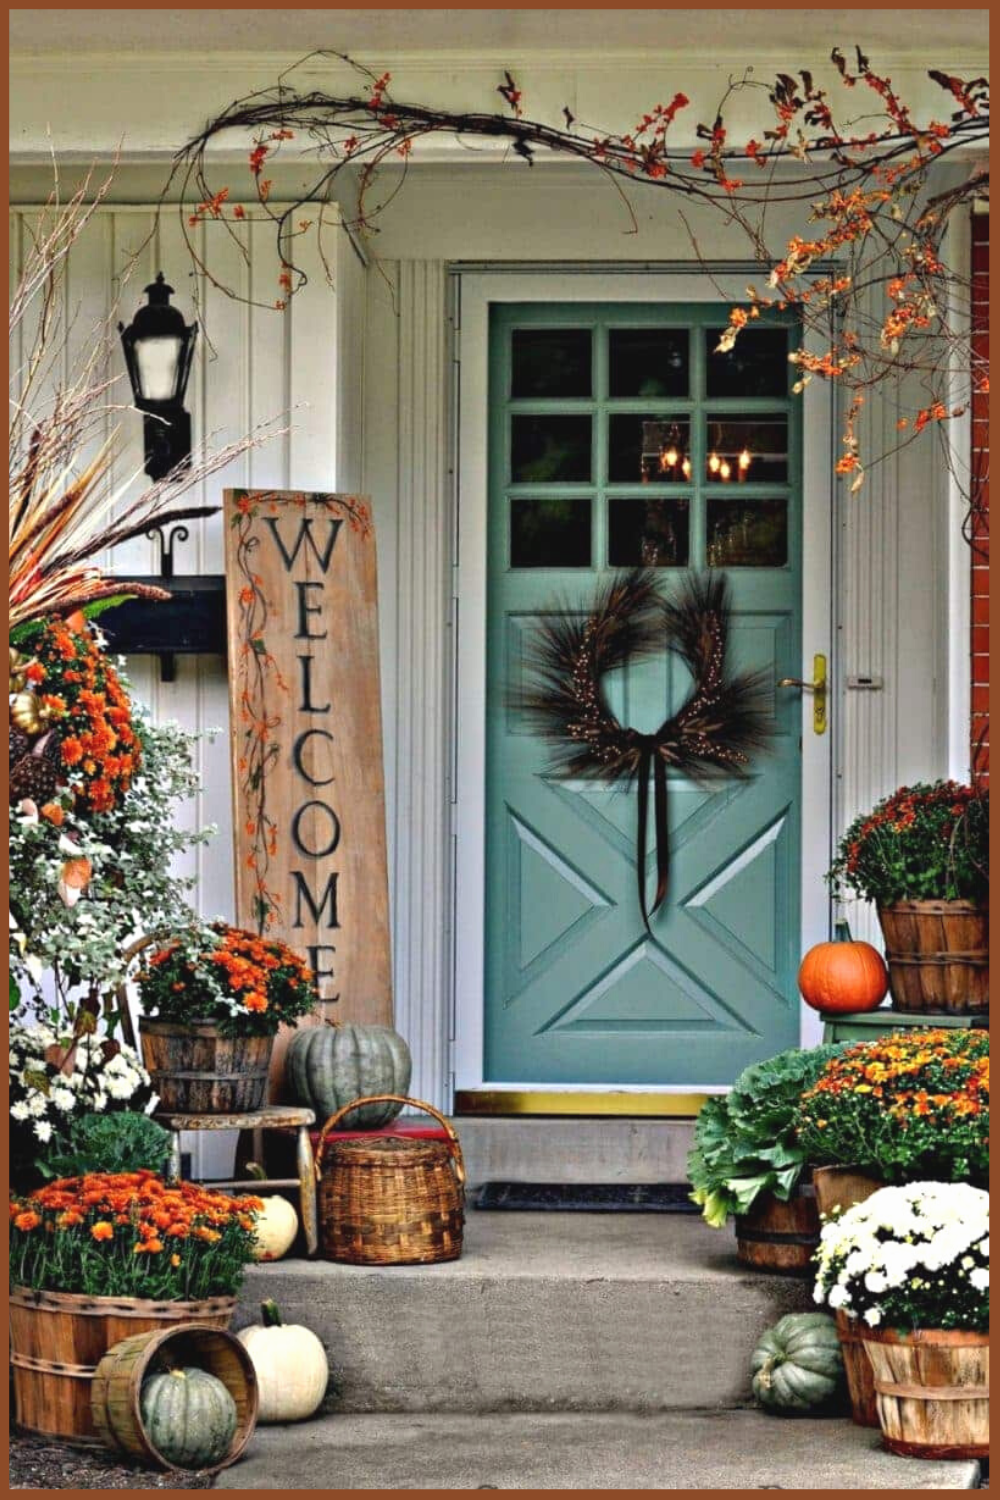 15 Fall Front Porch Decorating Ideas Make Your Porch Look Amazing Fall Front Porch Decor Fall Decorations Porch Front Porch Decorating